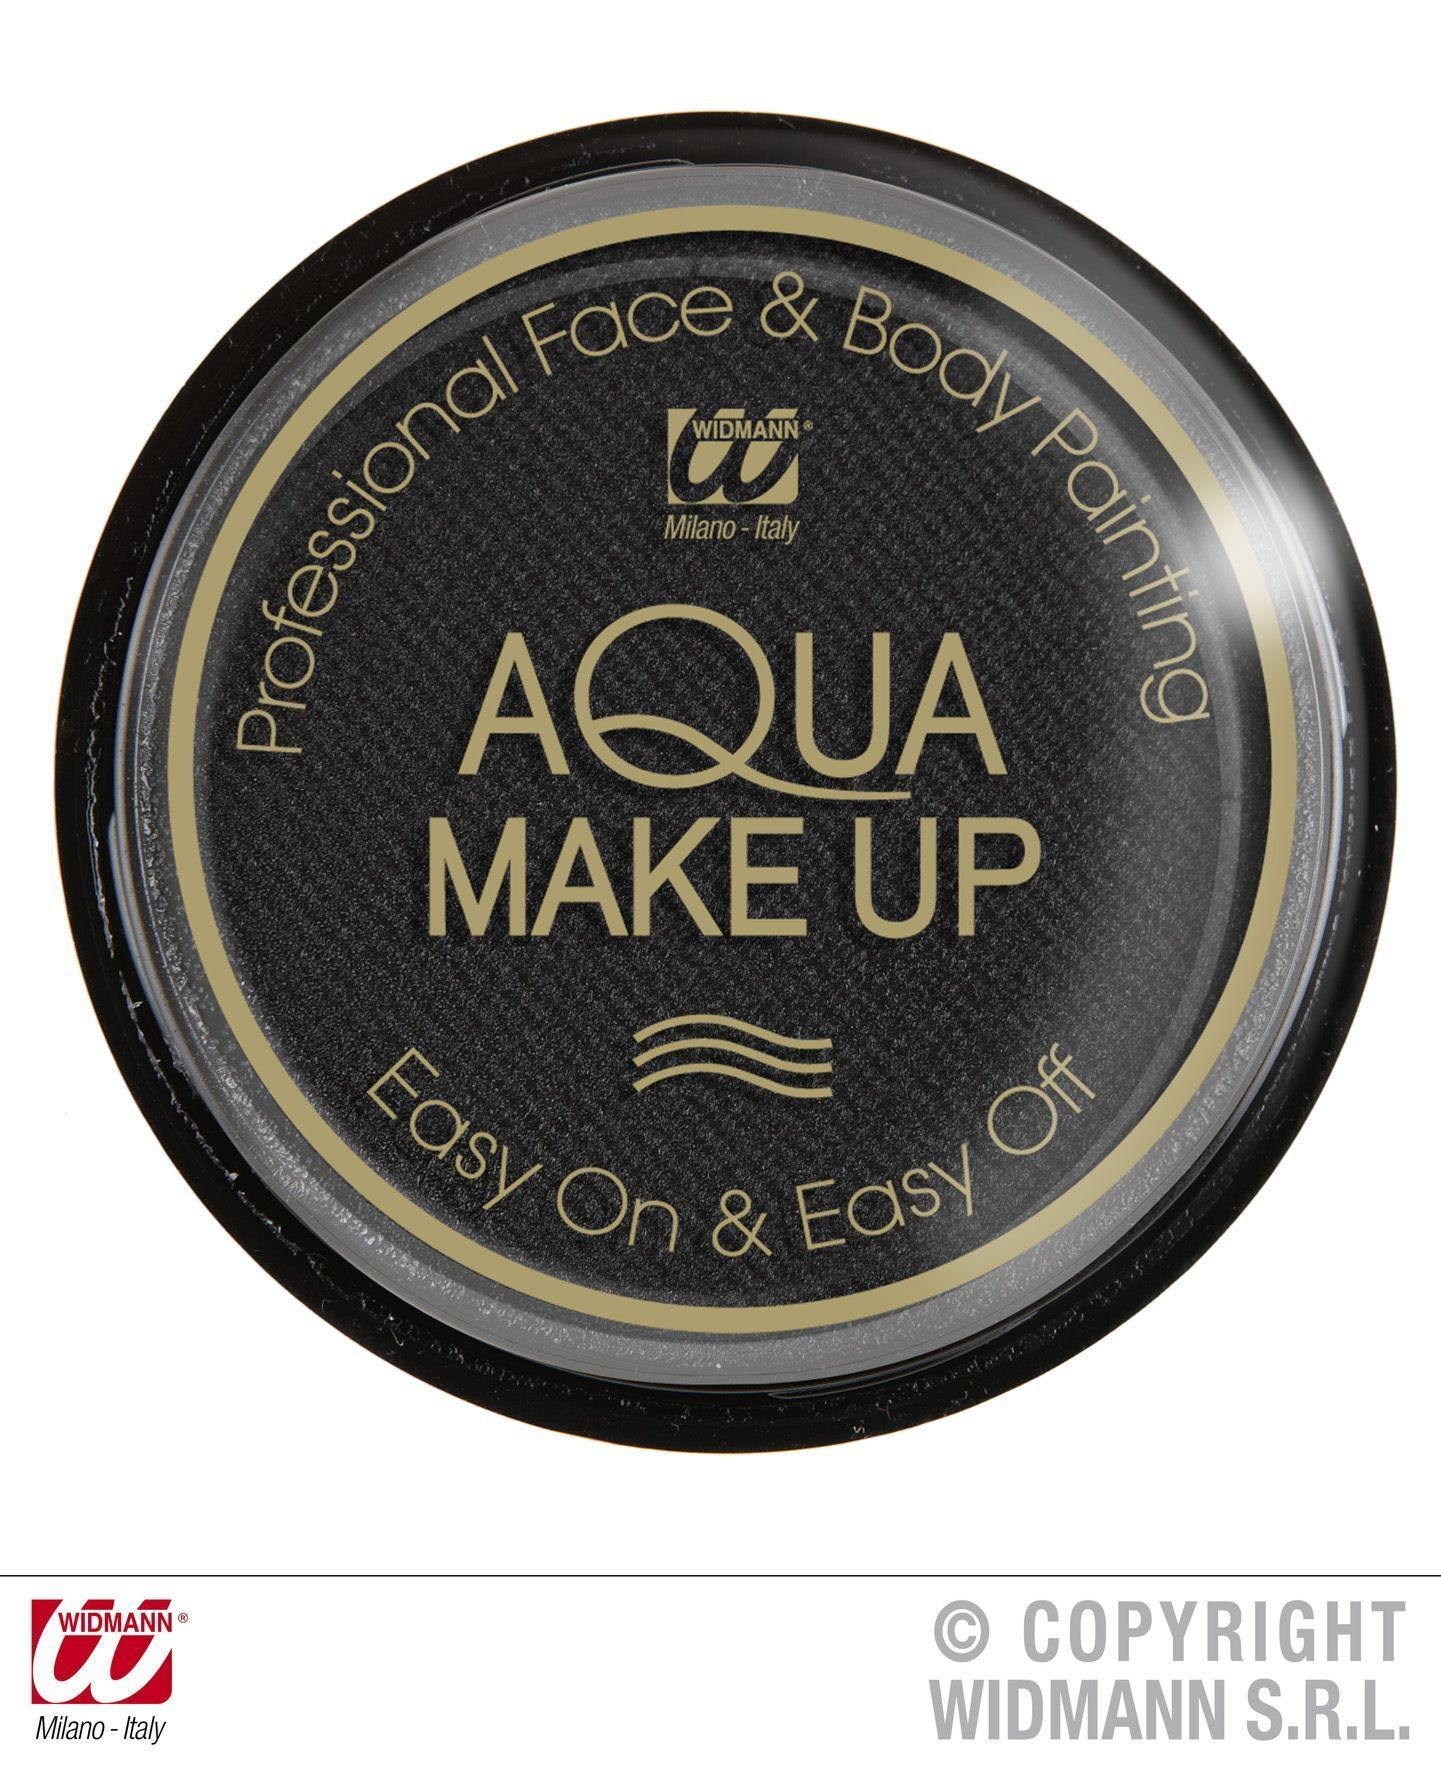 Aqua make-up 15 gram roetveegpiet